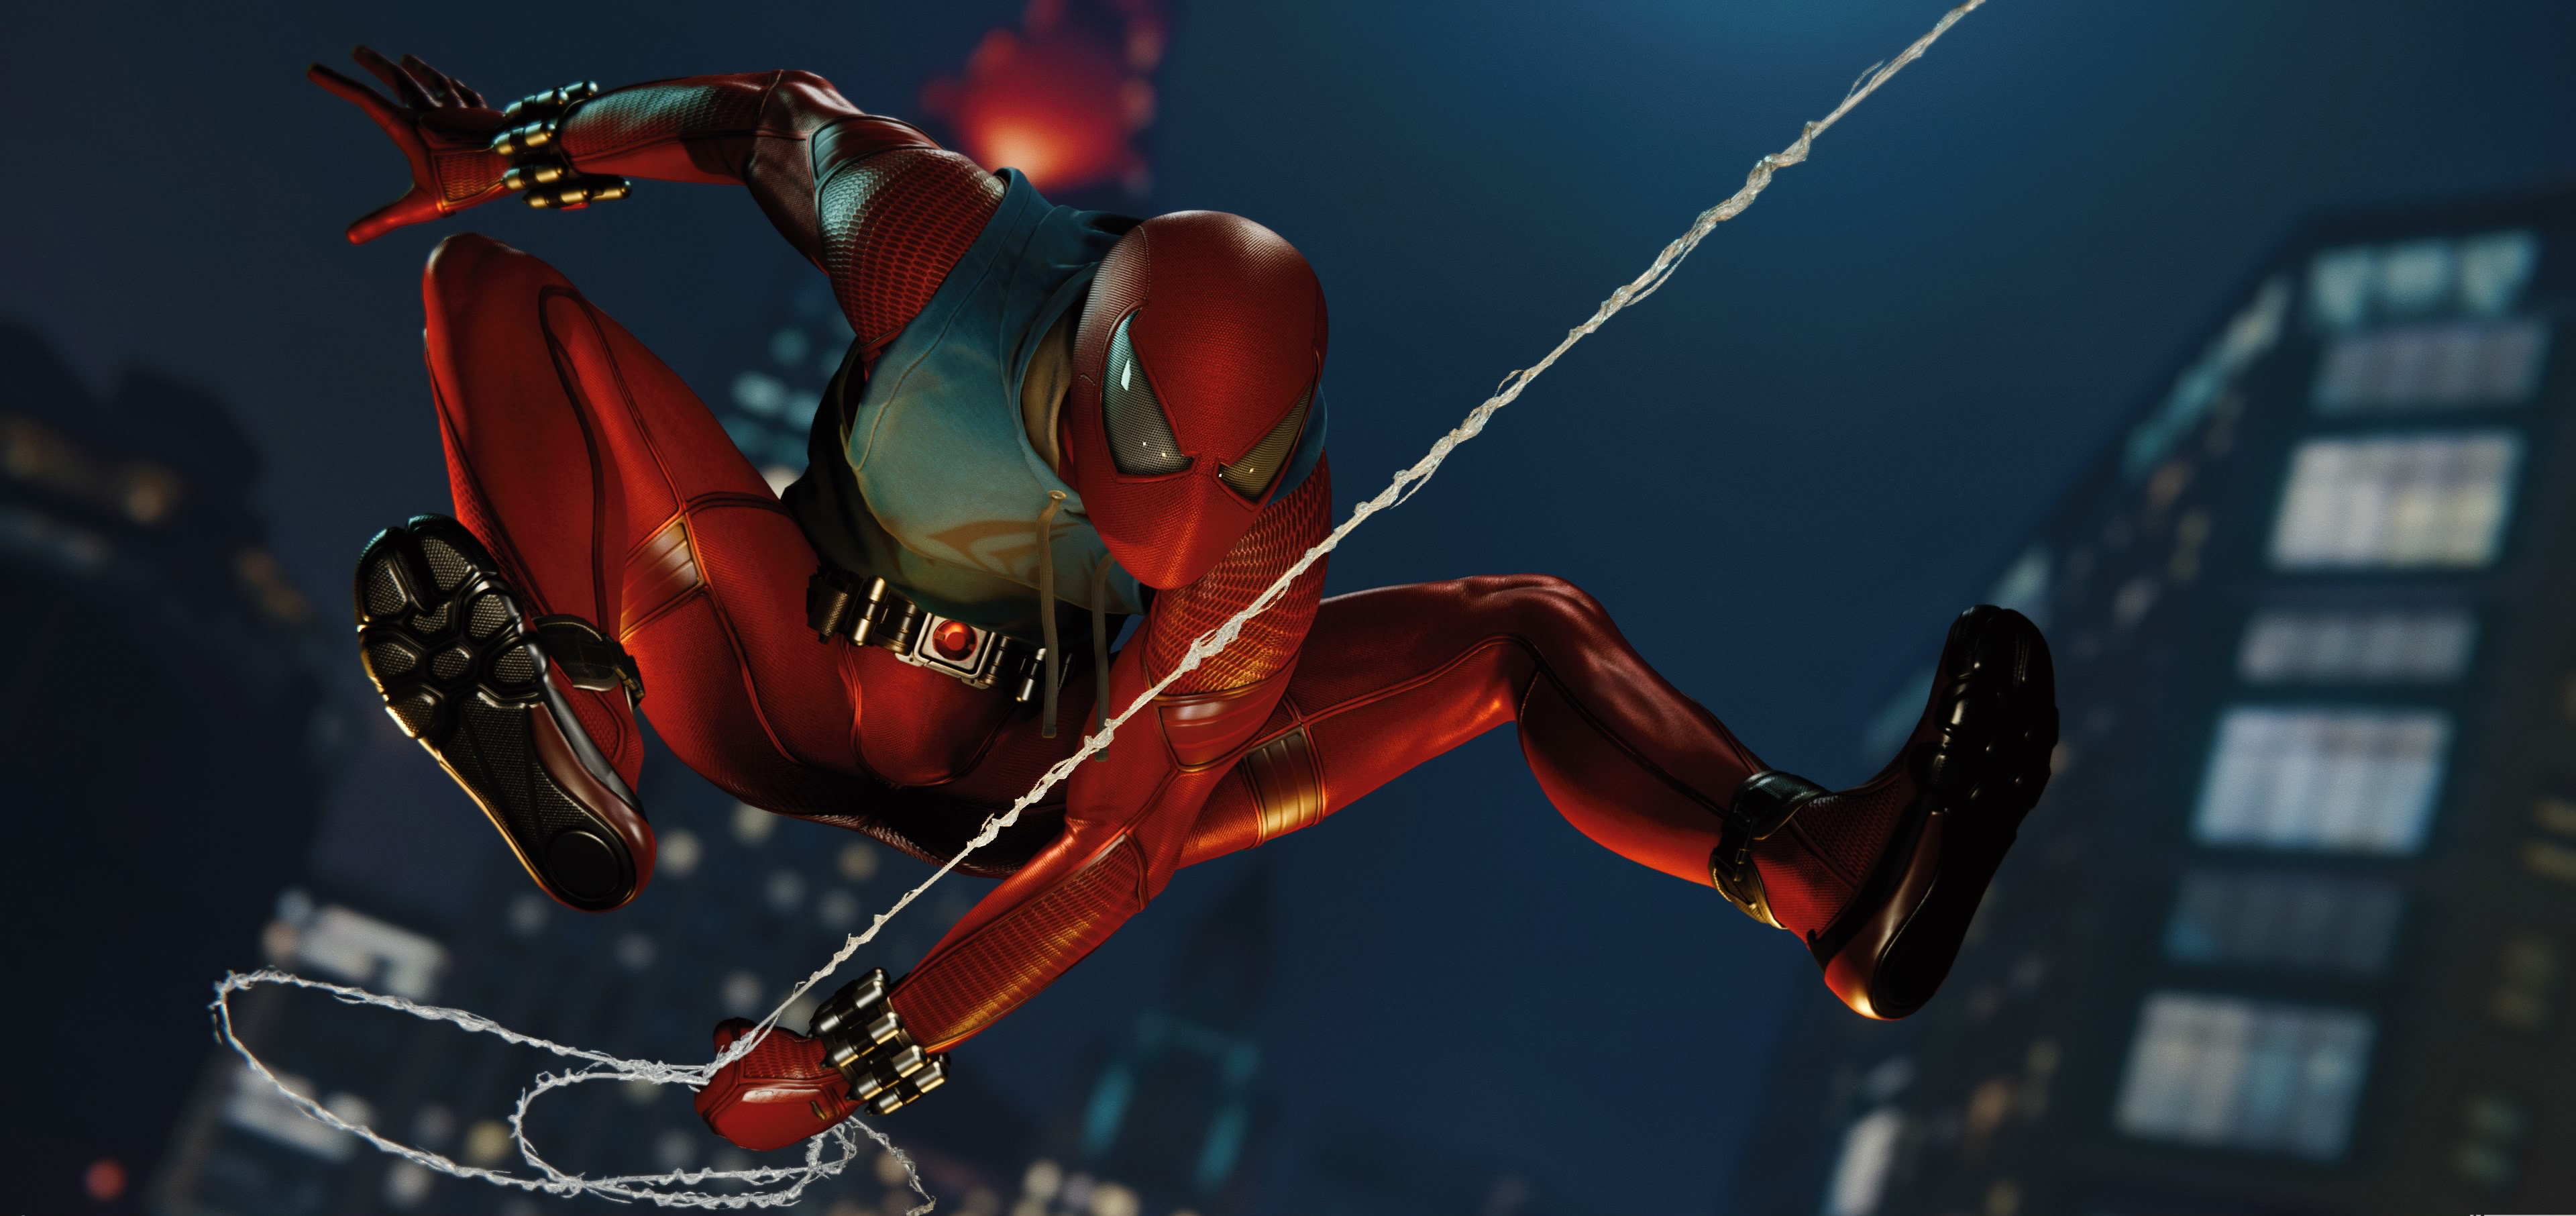 Scarlet Spider 4k Ps4 Game Hd Games 4k Wallpapers Images Backgrounds Photos And Pictures